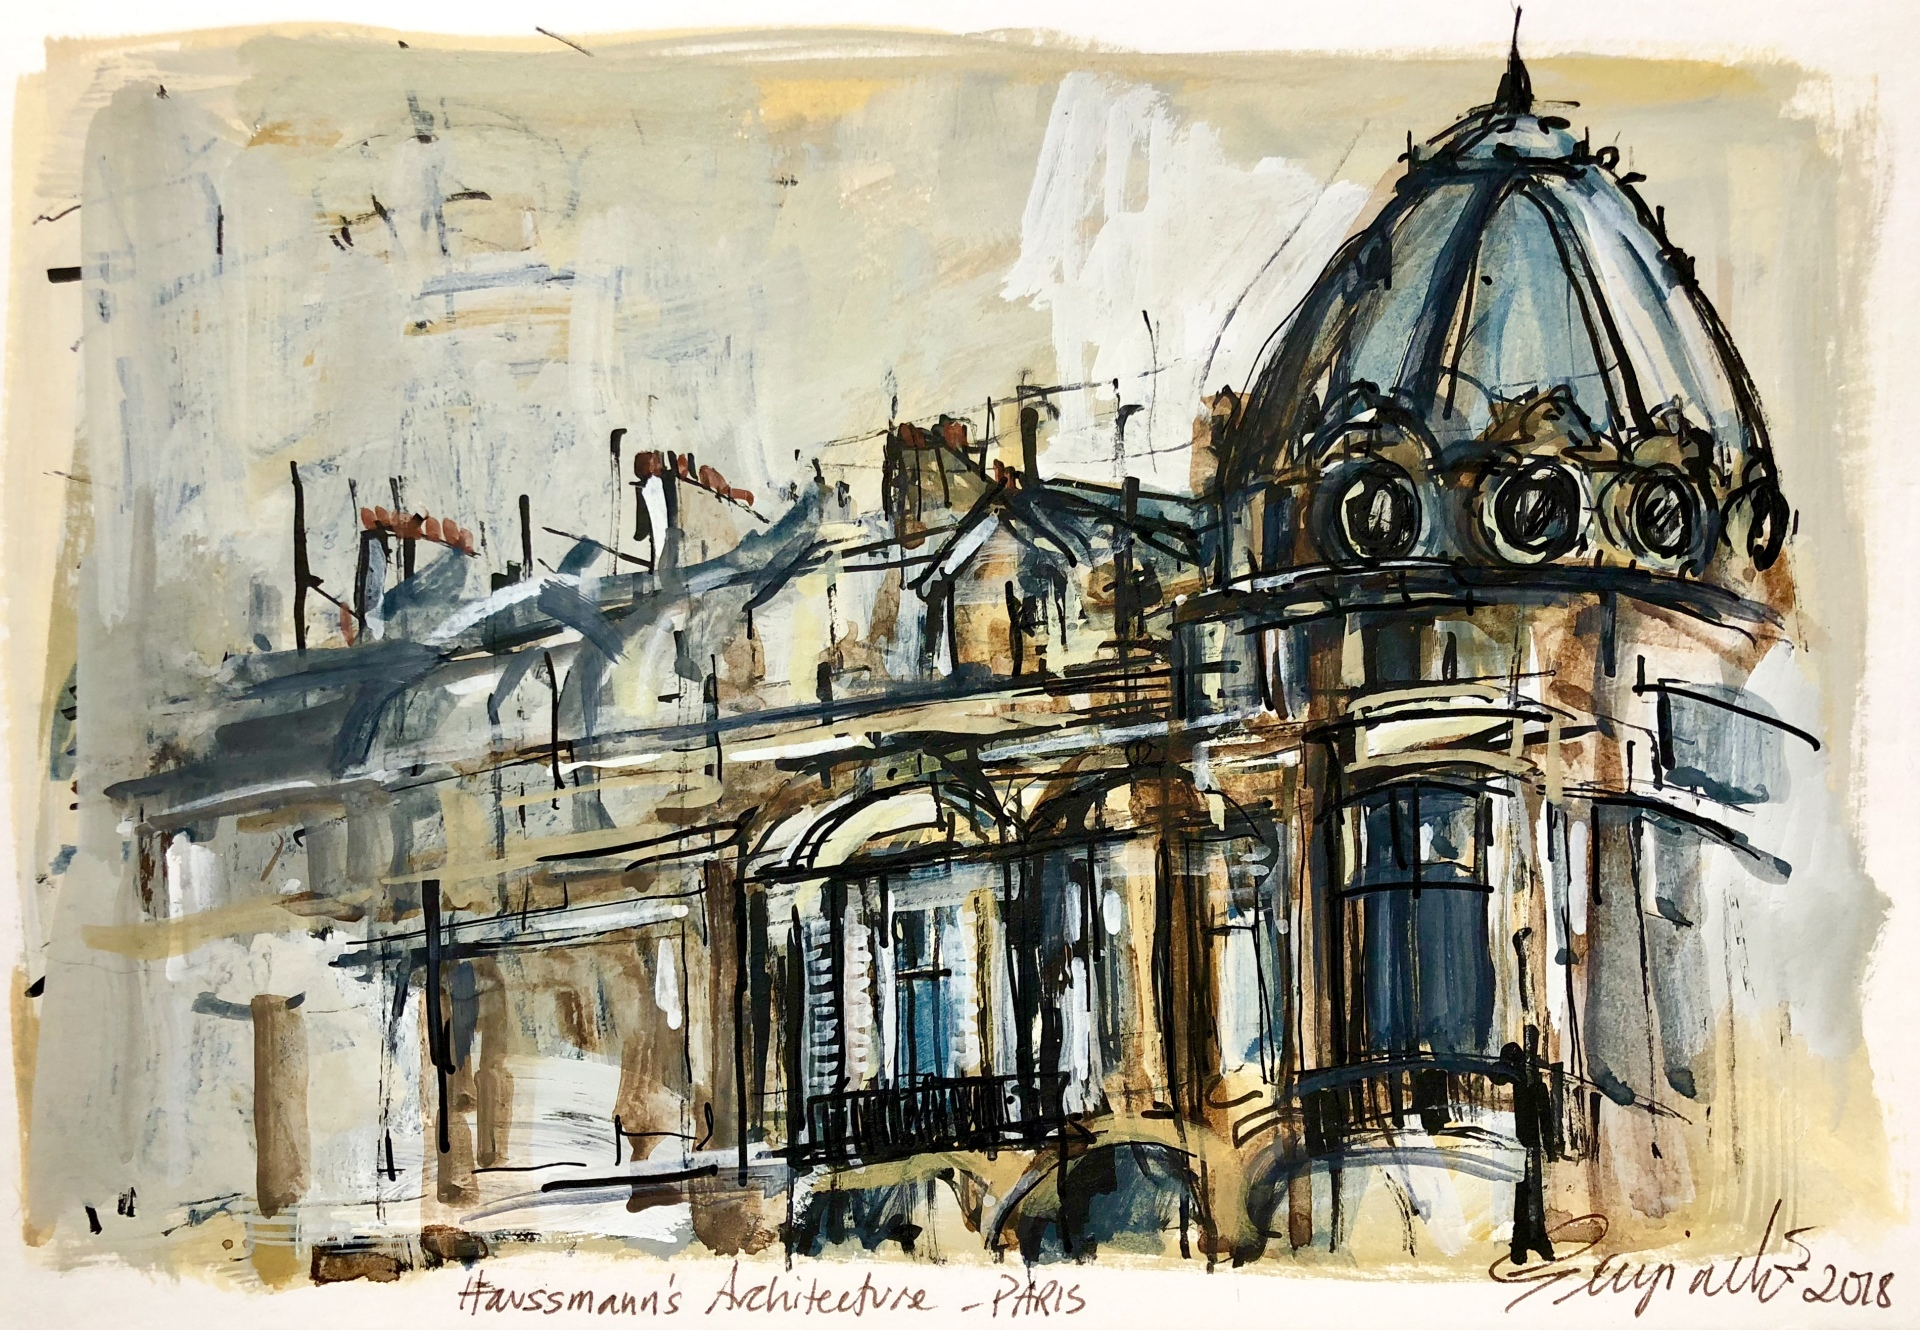 Haussmann's Architcture PARIS